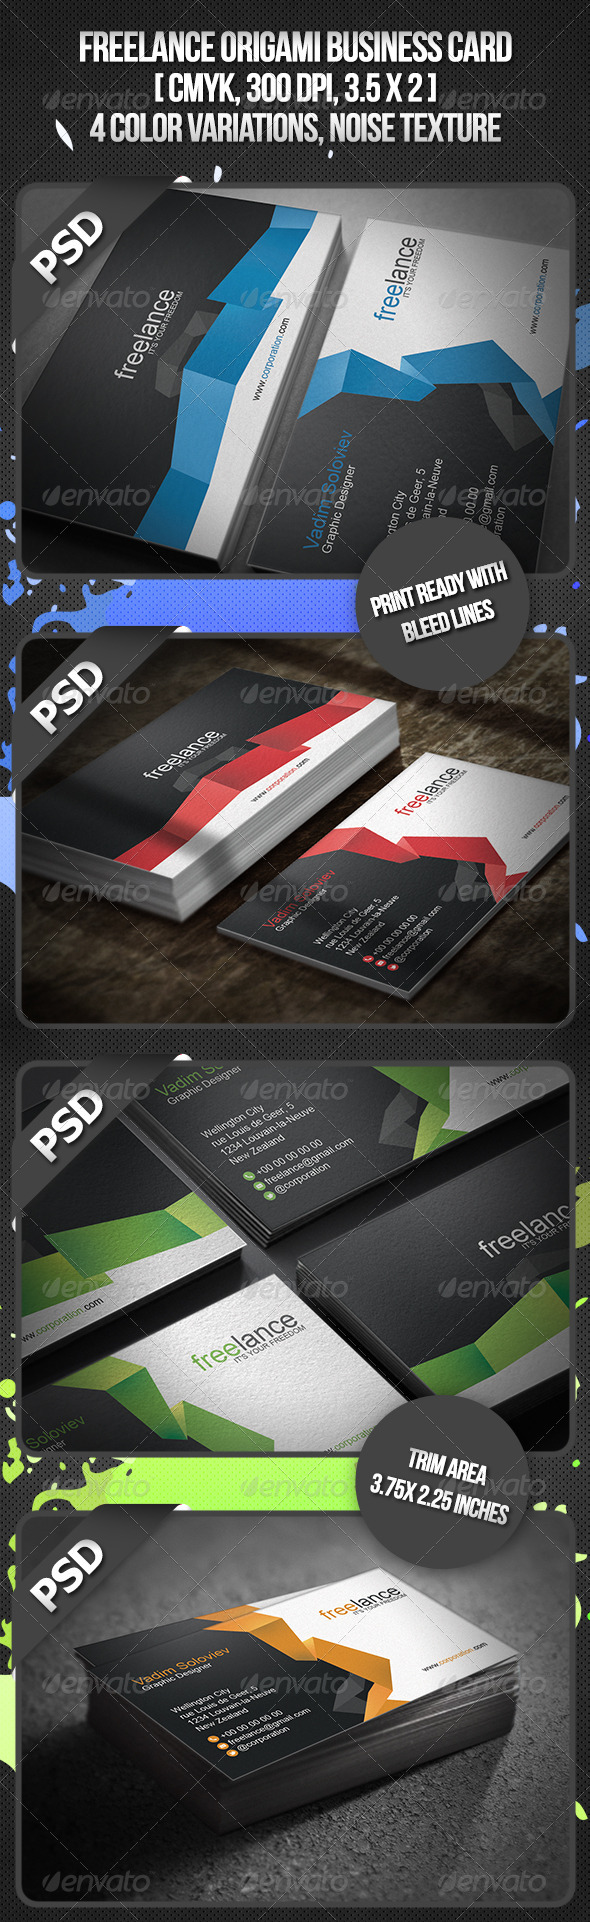 Freelance Origami Business Card - Creative Business Cards